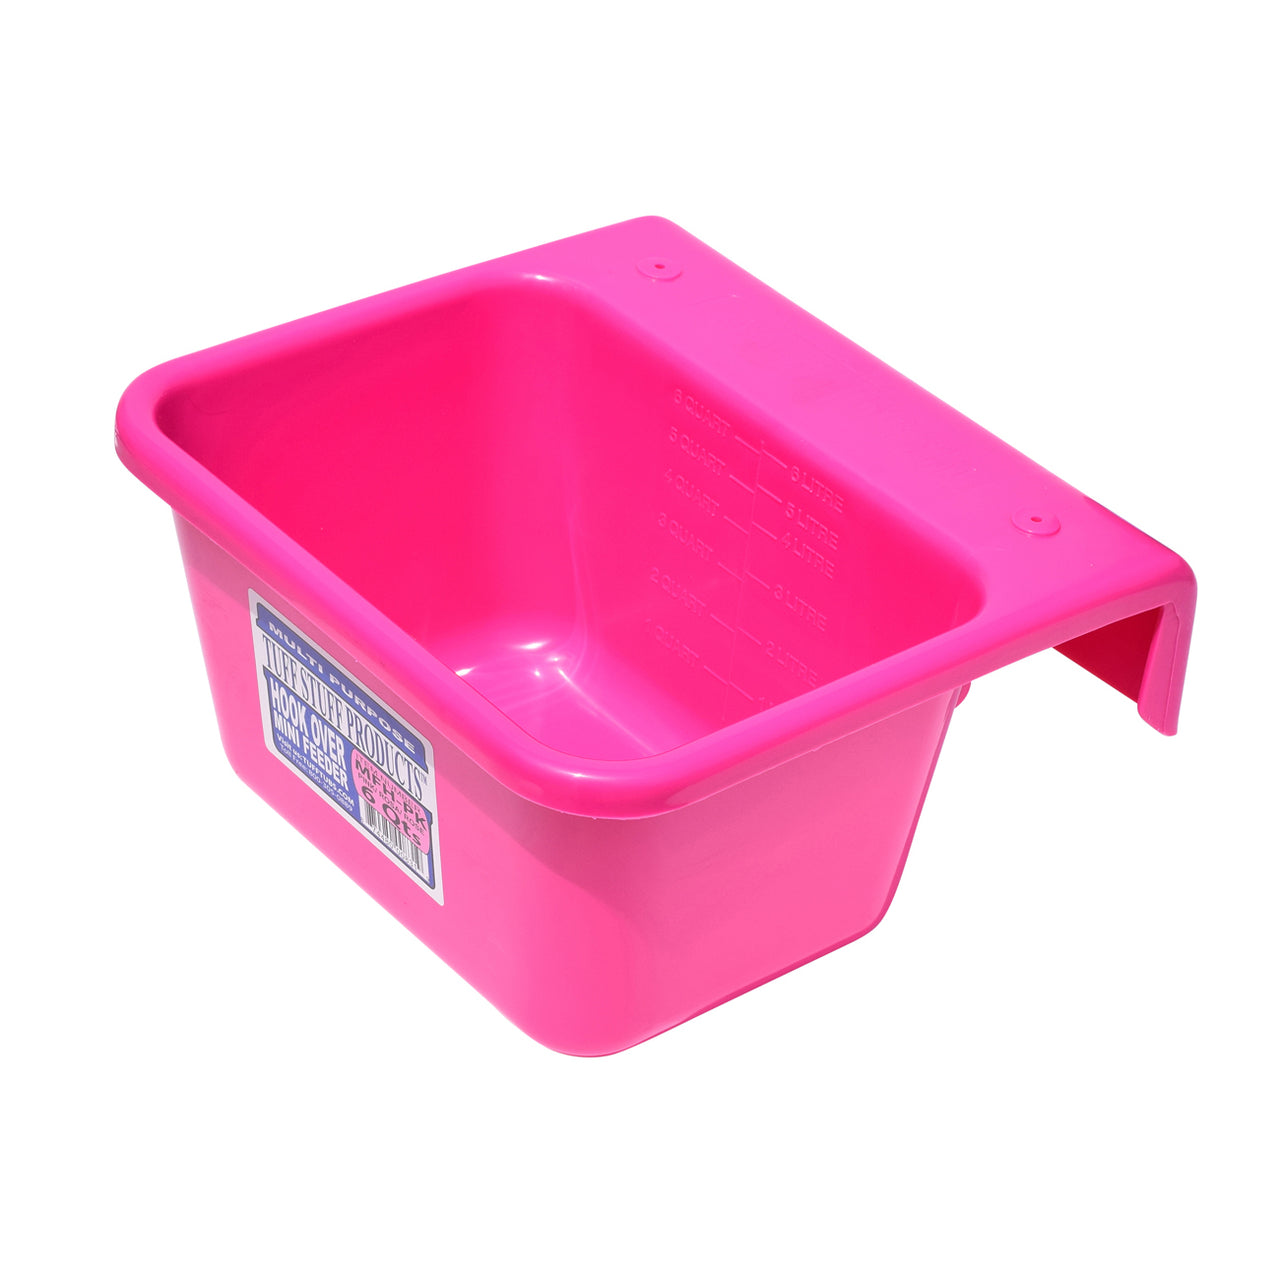 Tuff Stuff Mini Hook Over Feeder - Pink - Buckets Pails Feeders Scoops Tubs Bottles Tuff Stuff - Canada